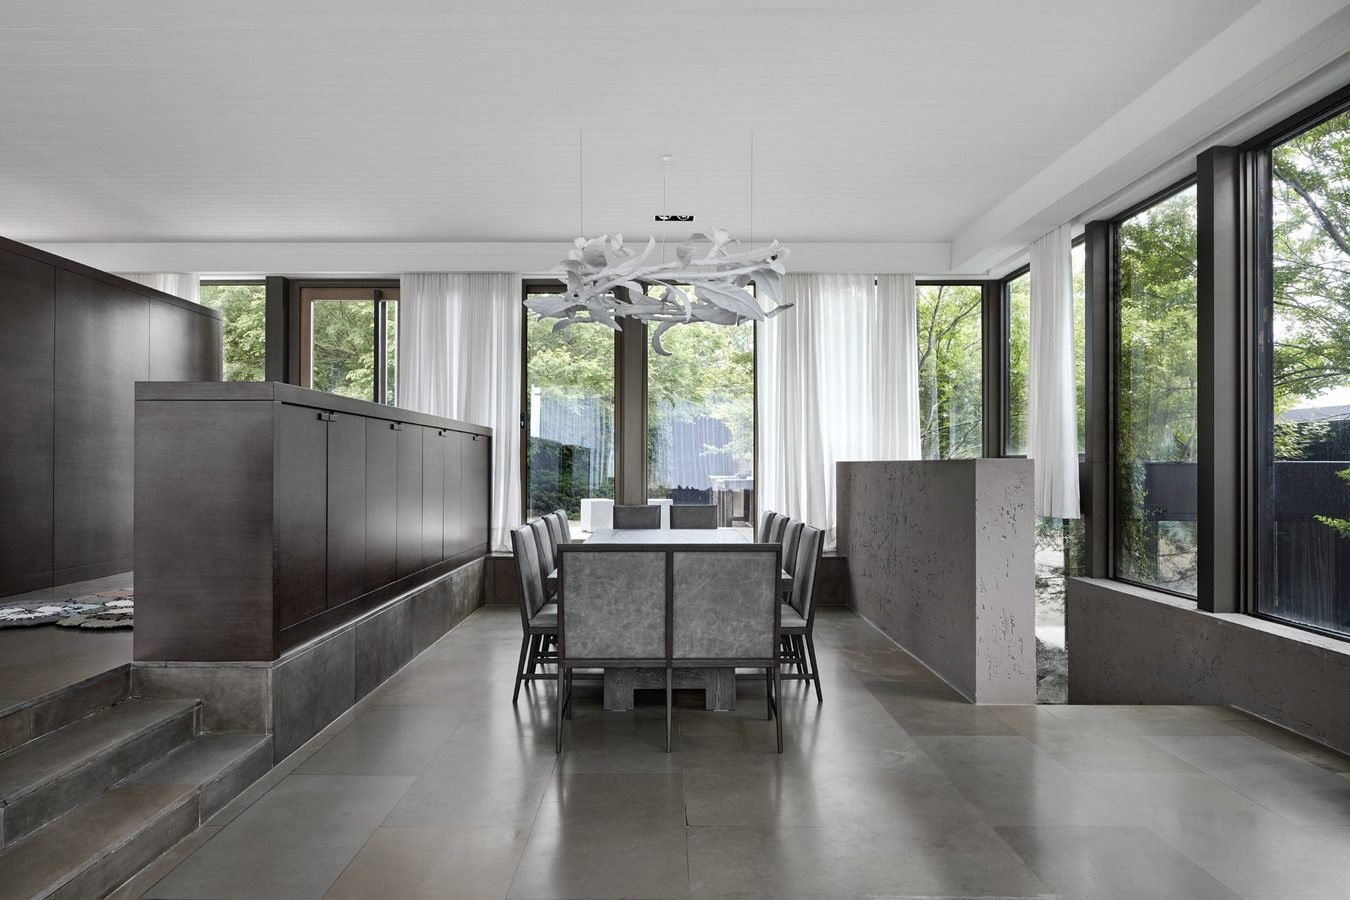 Meakins Road Residence by B.E Architecture - Sheet3